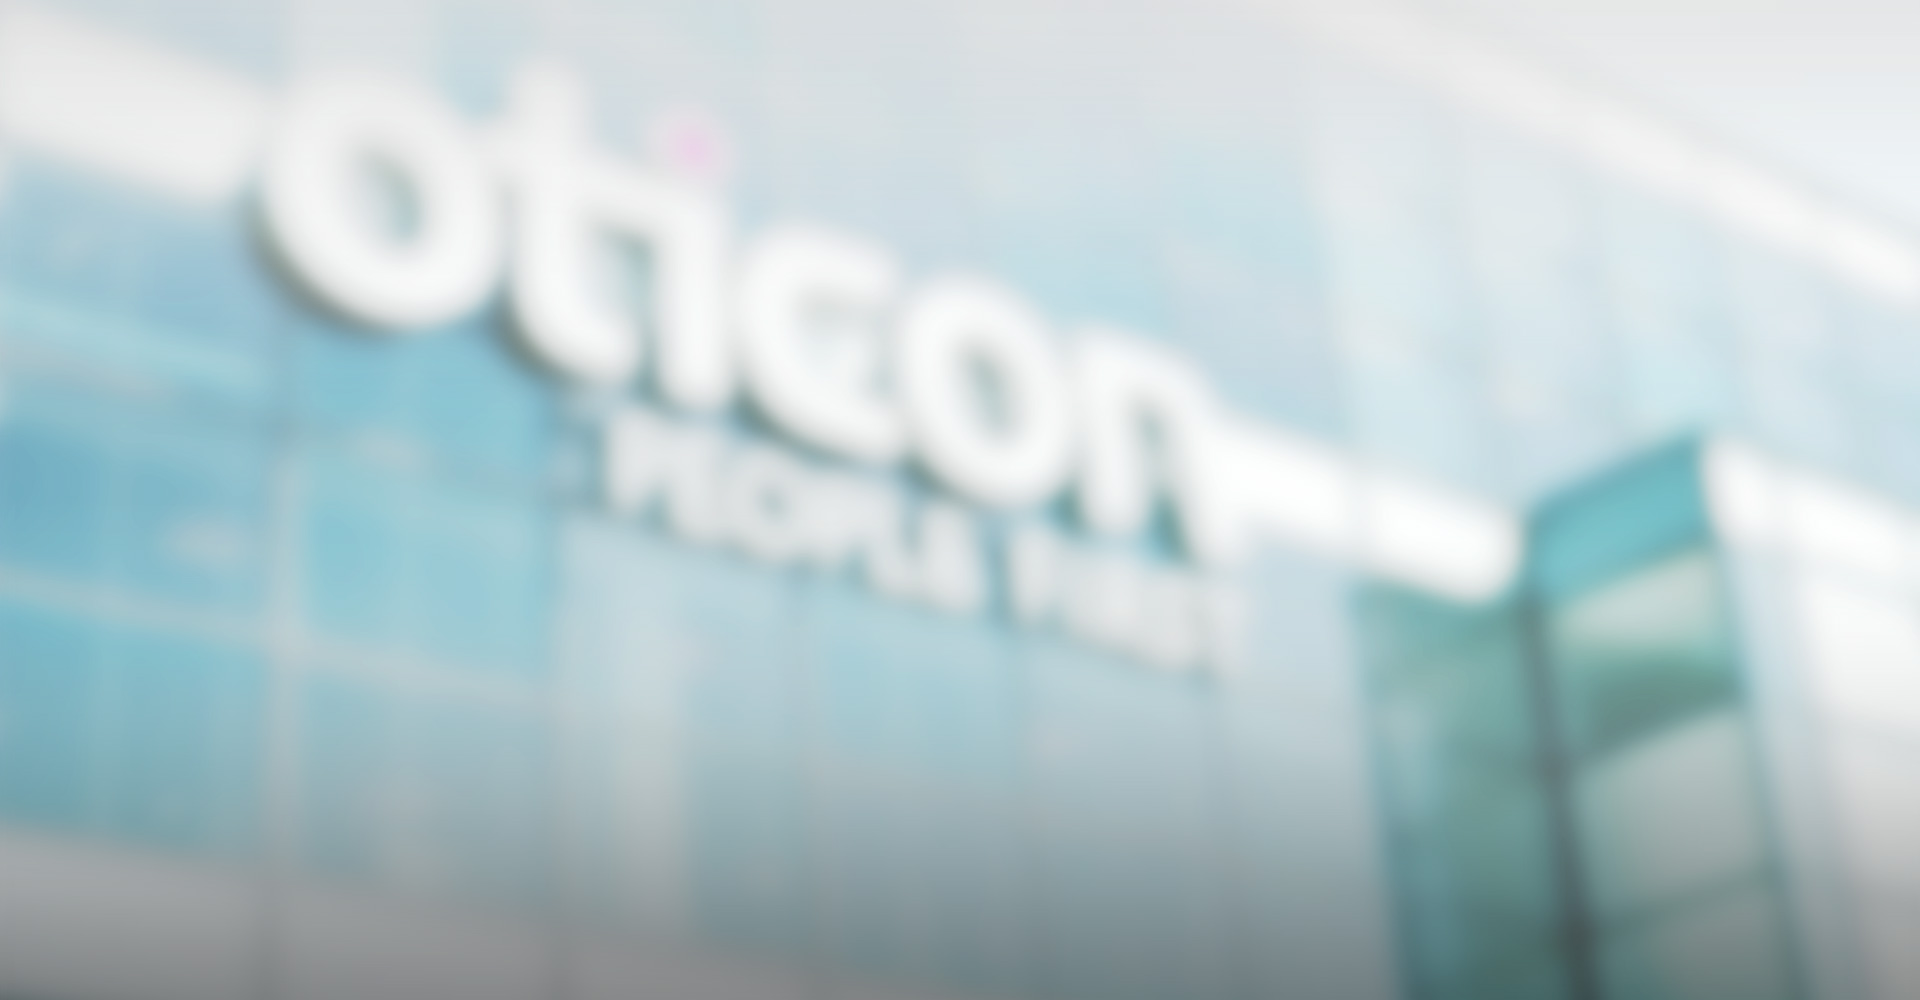 Contact us - Oticon worldwide offices | Oticon